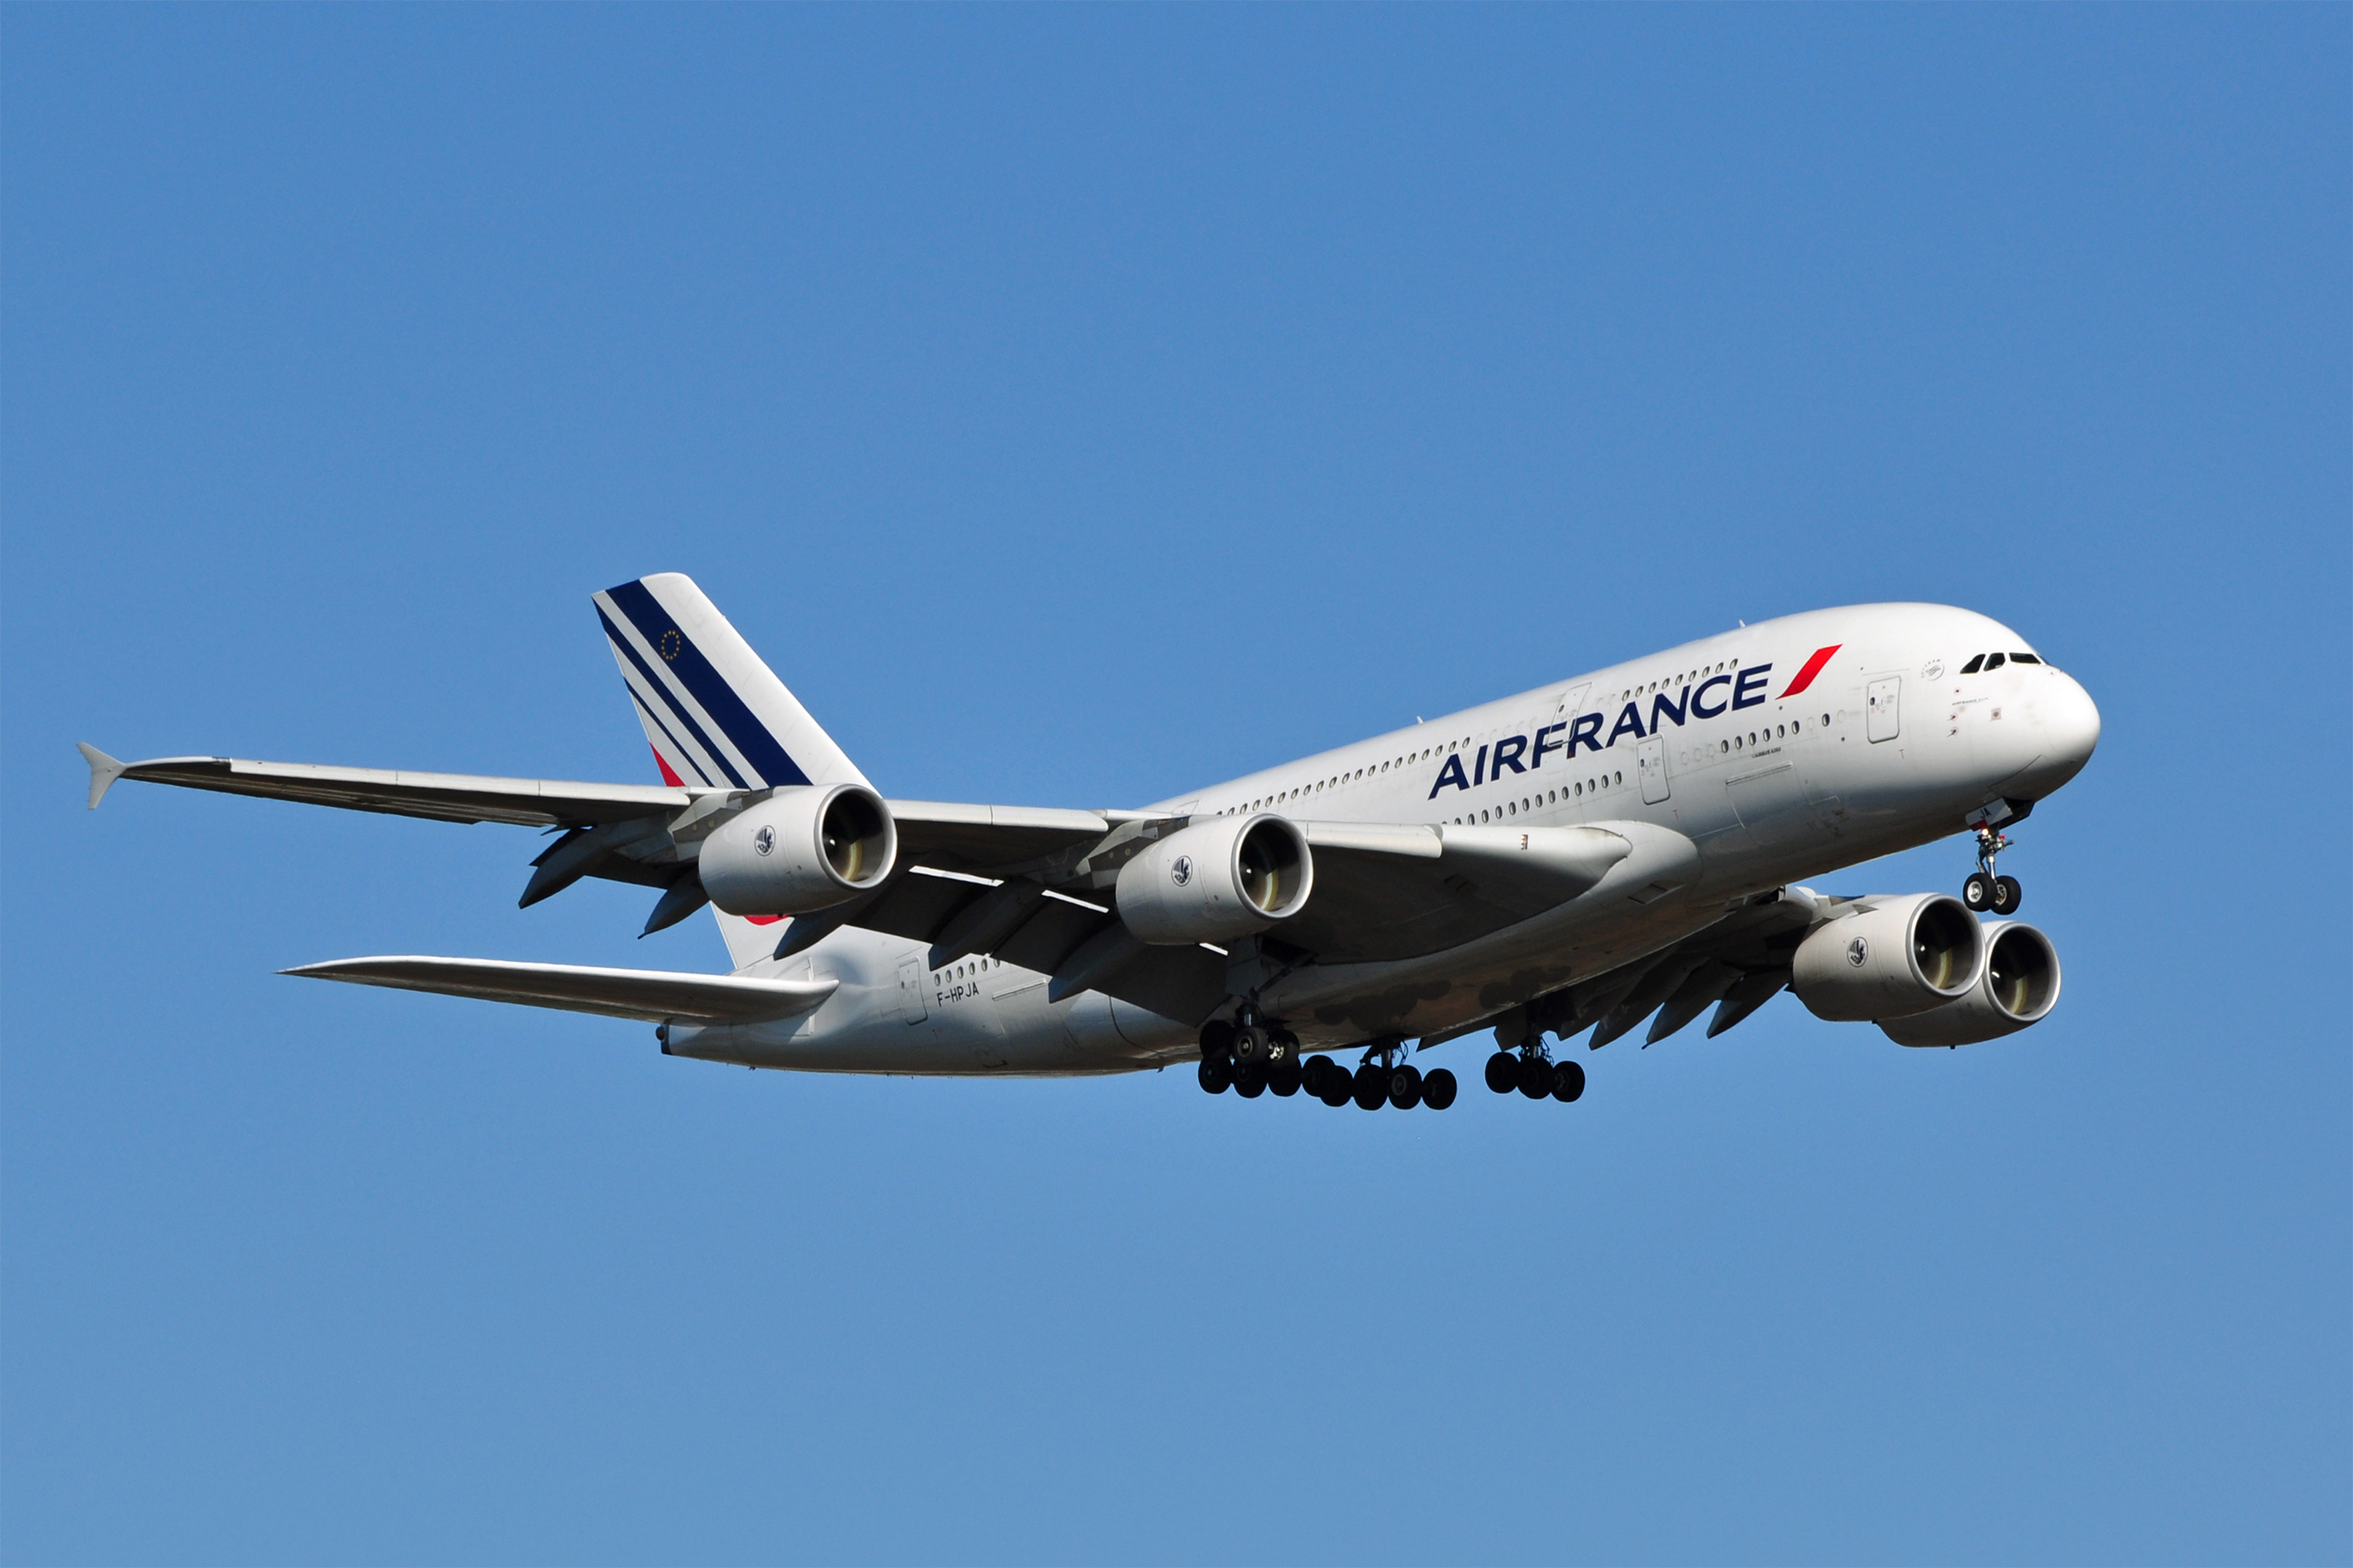 Download this File Air France Hpja picture